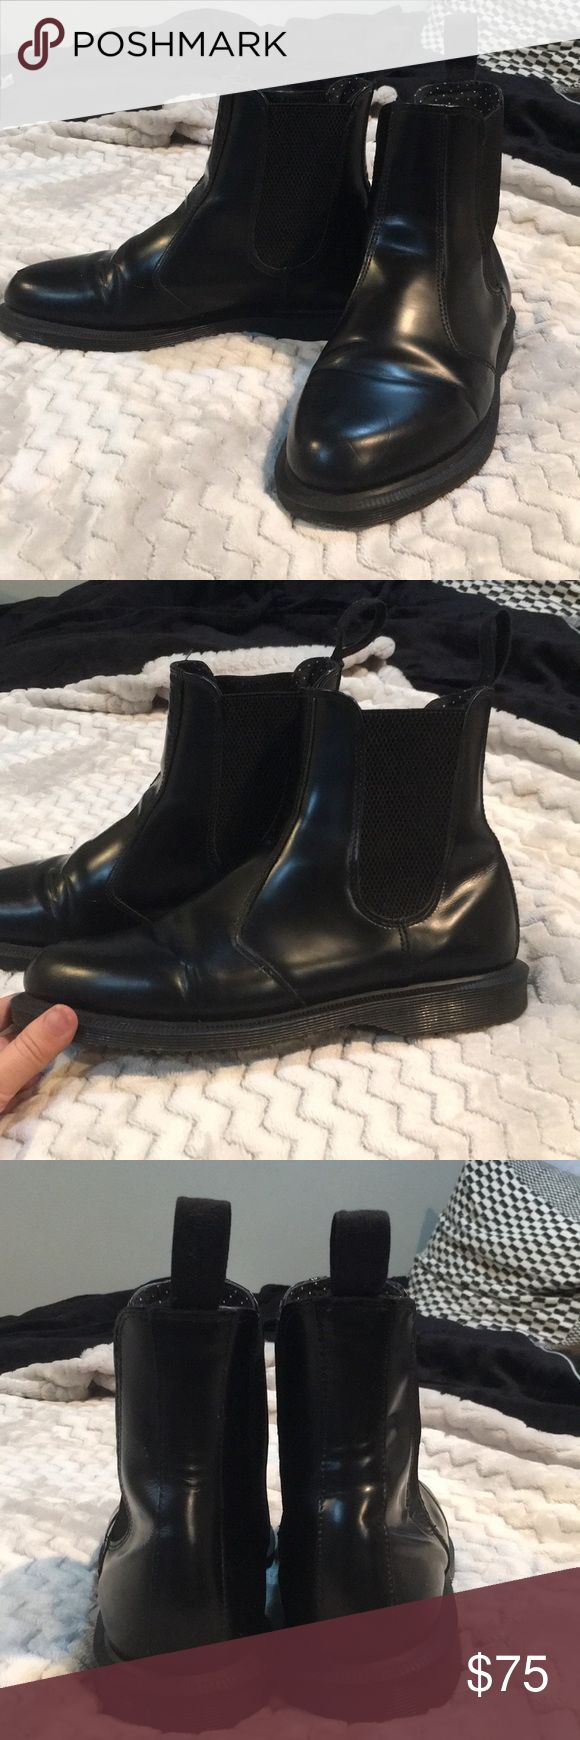 Doc Martens Chelsea Boot Best brand, cutest style. A little broken in (which makes them comfortable) but great condition. Very little flaws (except small flaw shown in pictures on front of one boot). Polka Dot pattern on inside Doc Martens Shoes Ankle Boots & Booties